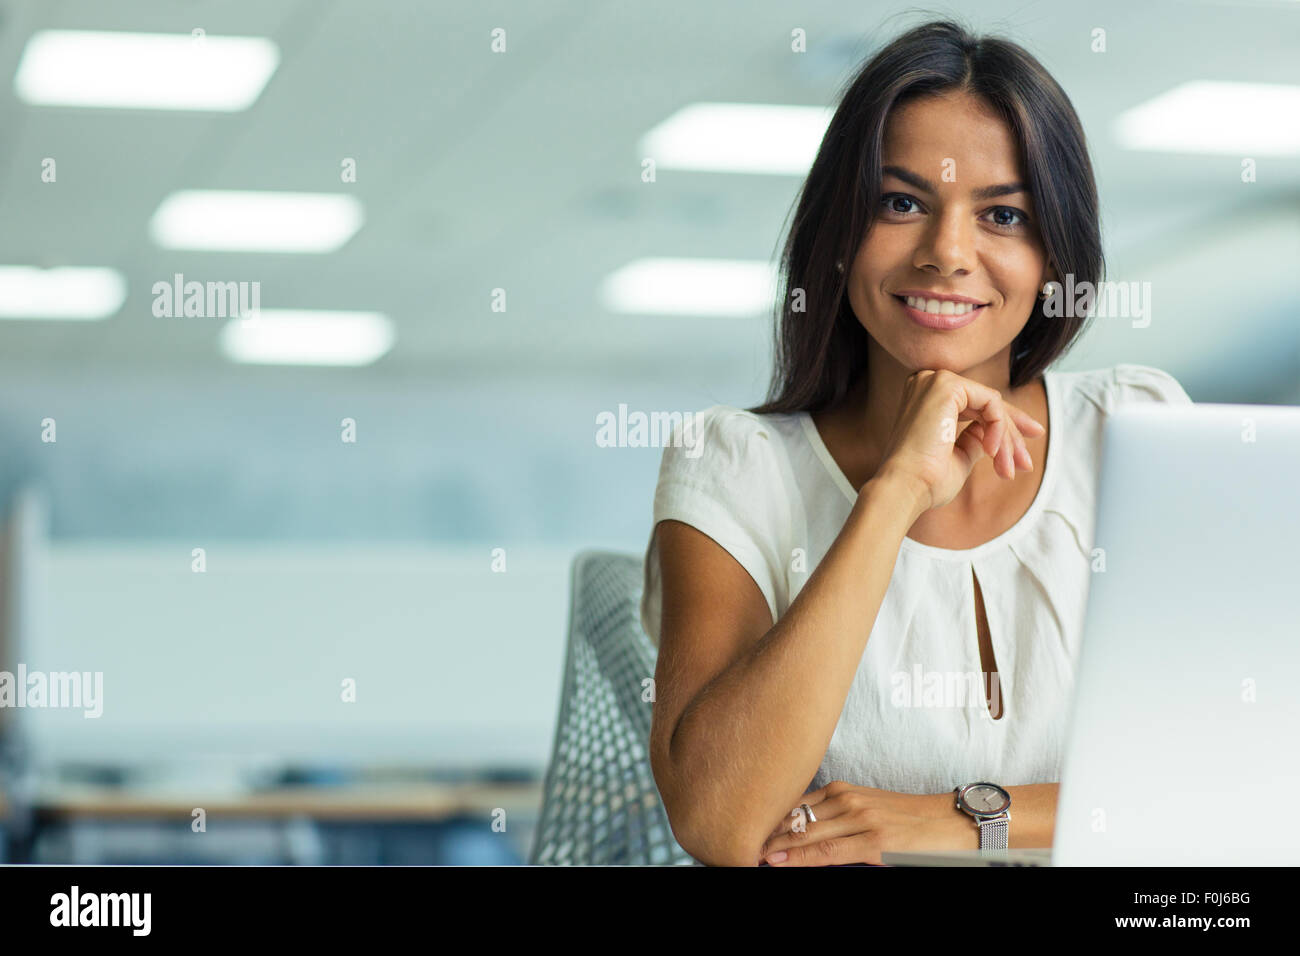 Portrait of a smiling businesswoman working in office - Stock Image